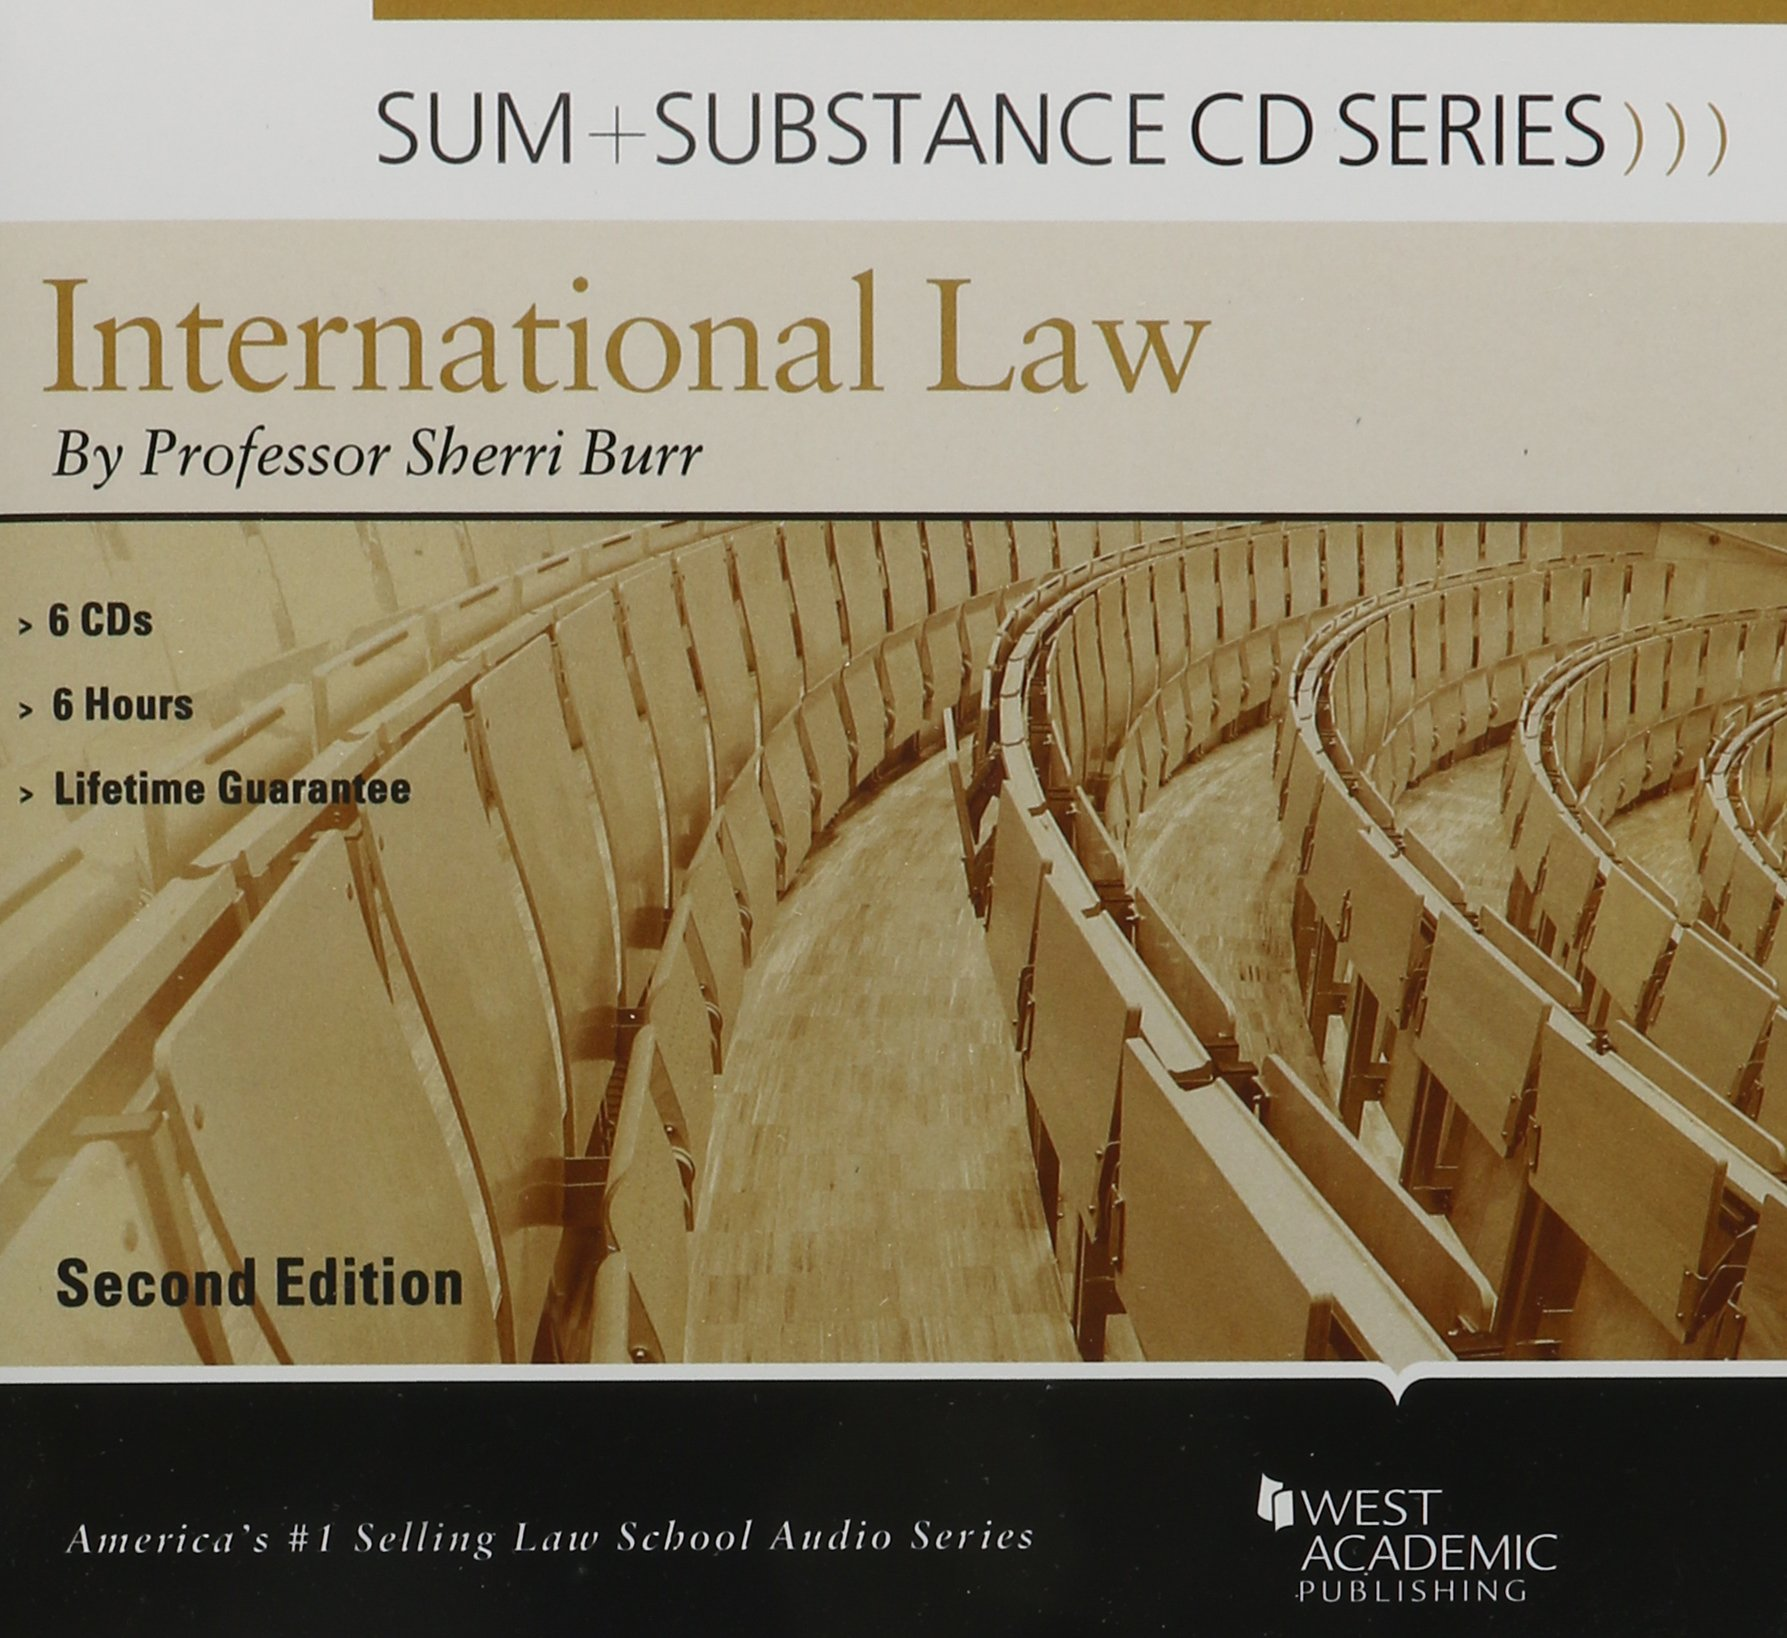 Sum and Substance Audio on International Law by West Academic Publishing